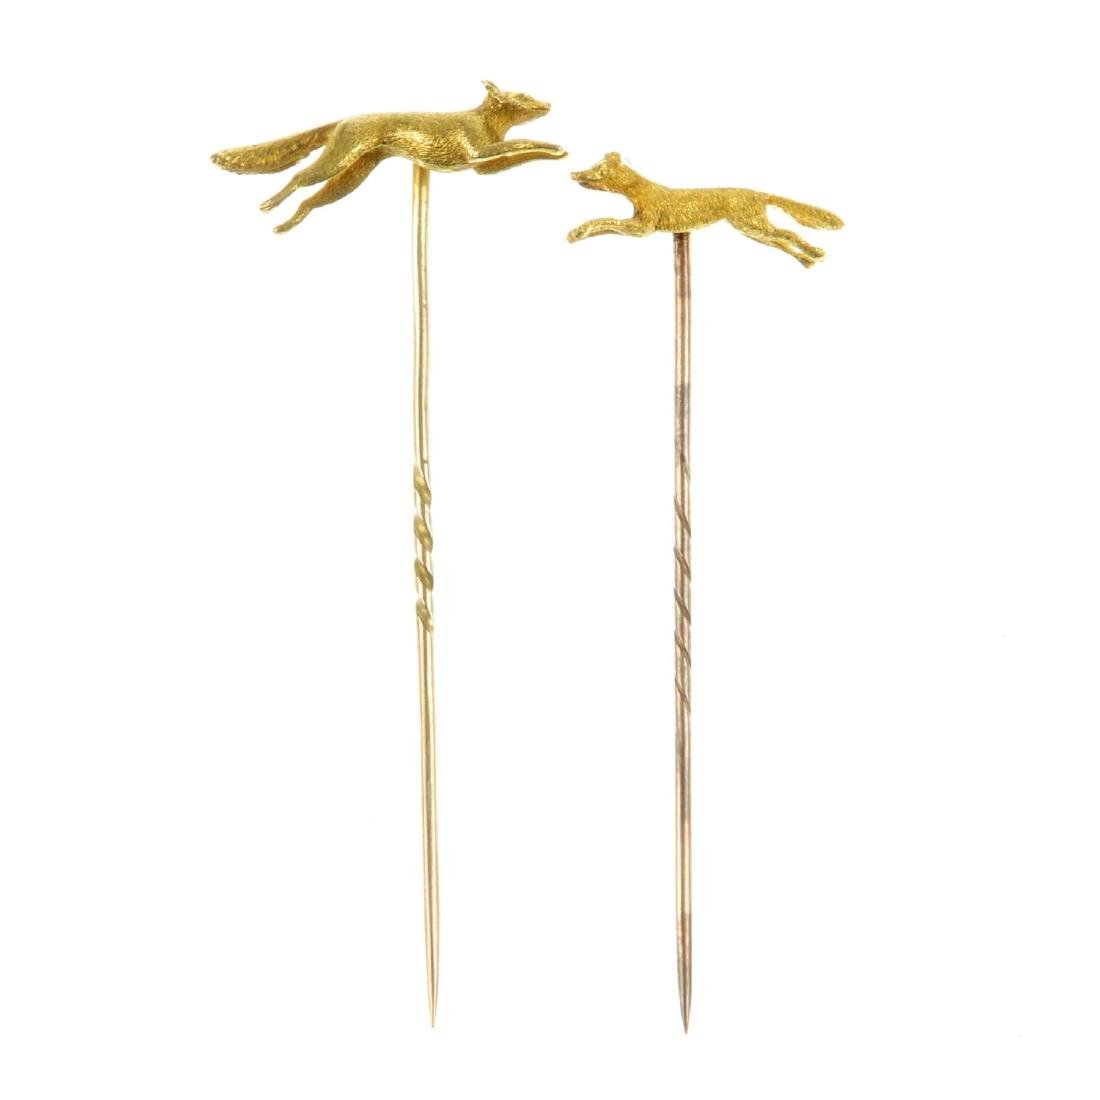 Two fox stickpins. Both designed as leaping or running